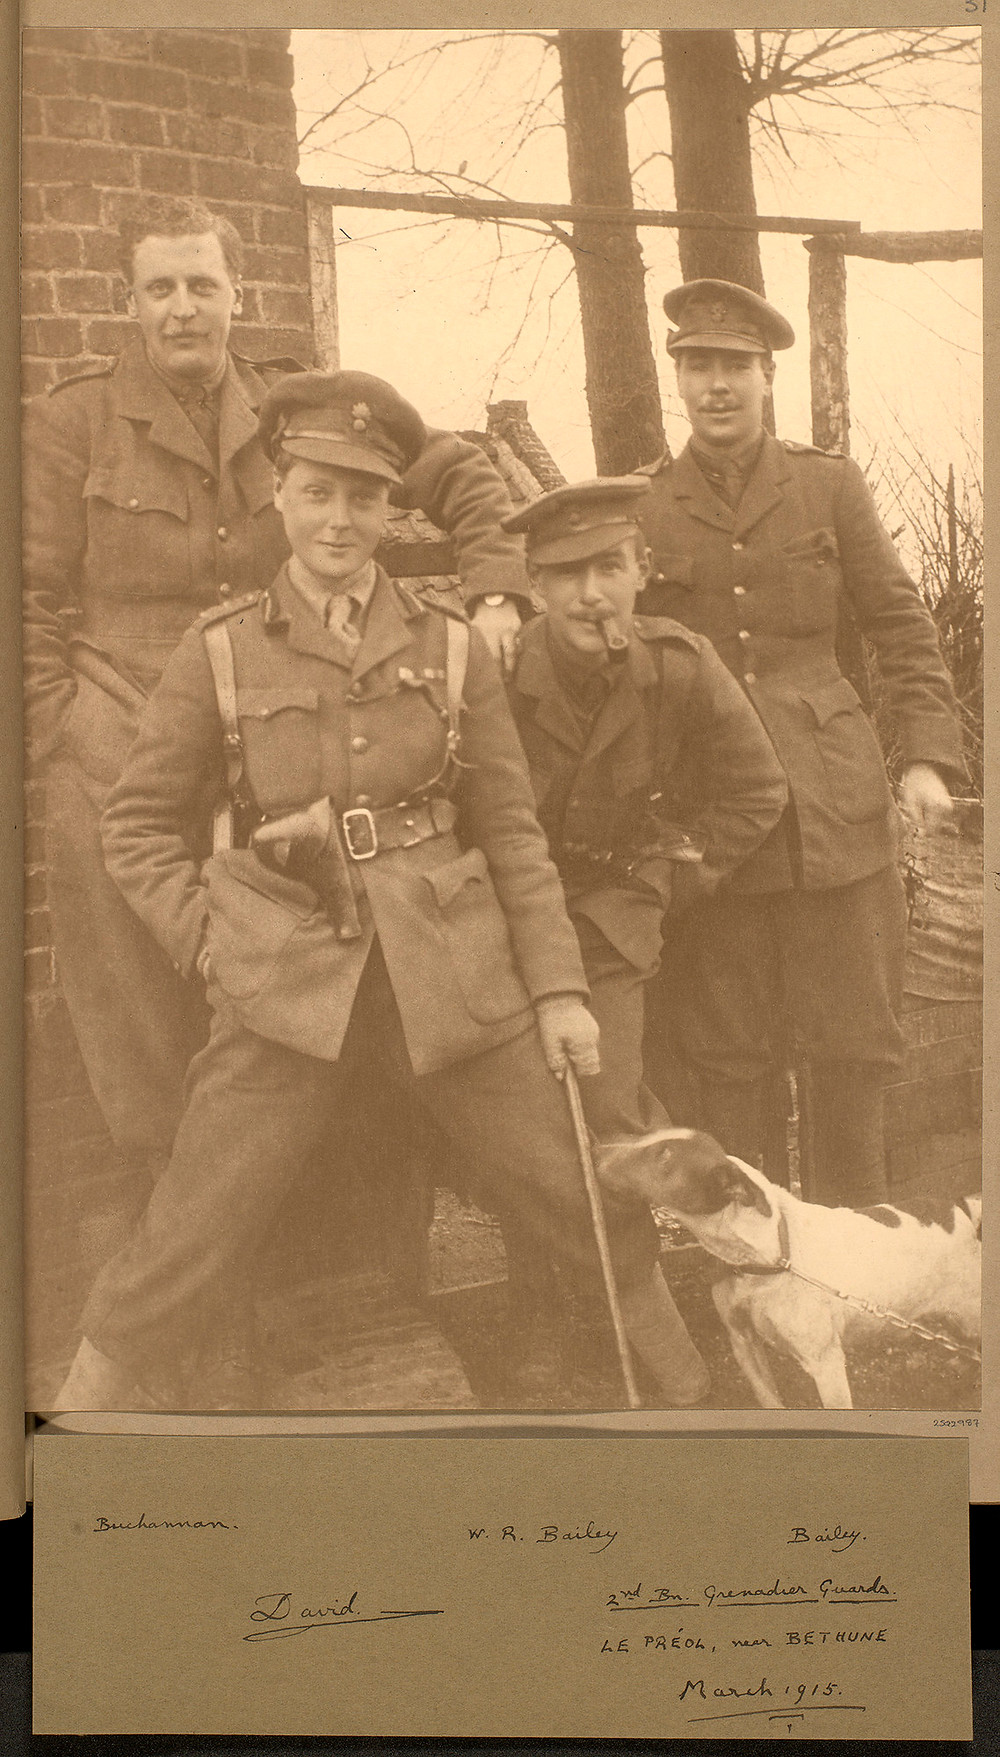 Prince of Wales, later King Edward VIII (1894-1972) posing with a dog and three other soldiers from the 2nd Battalion, Grenadier Guards. March 1915